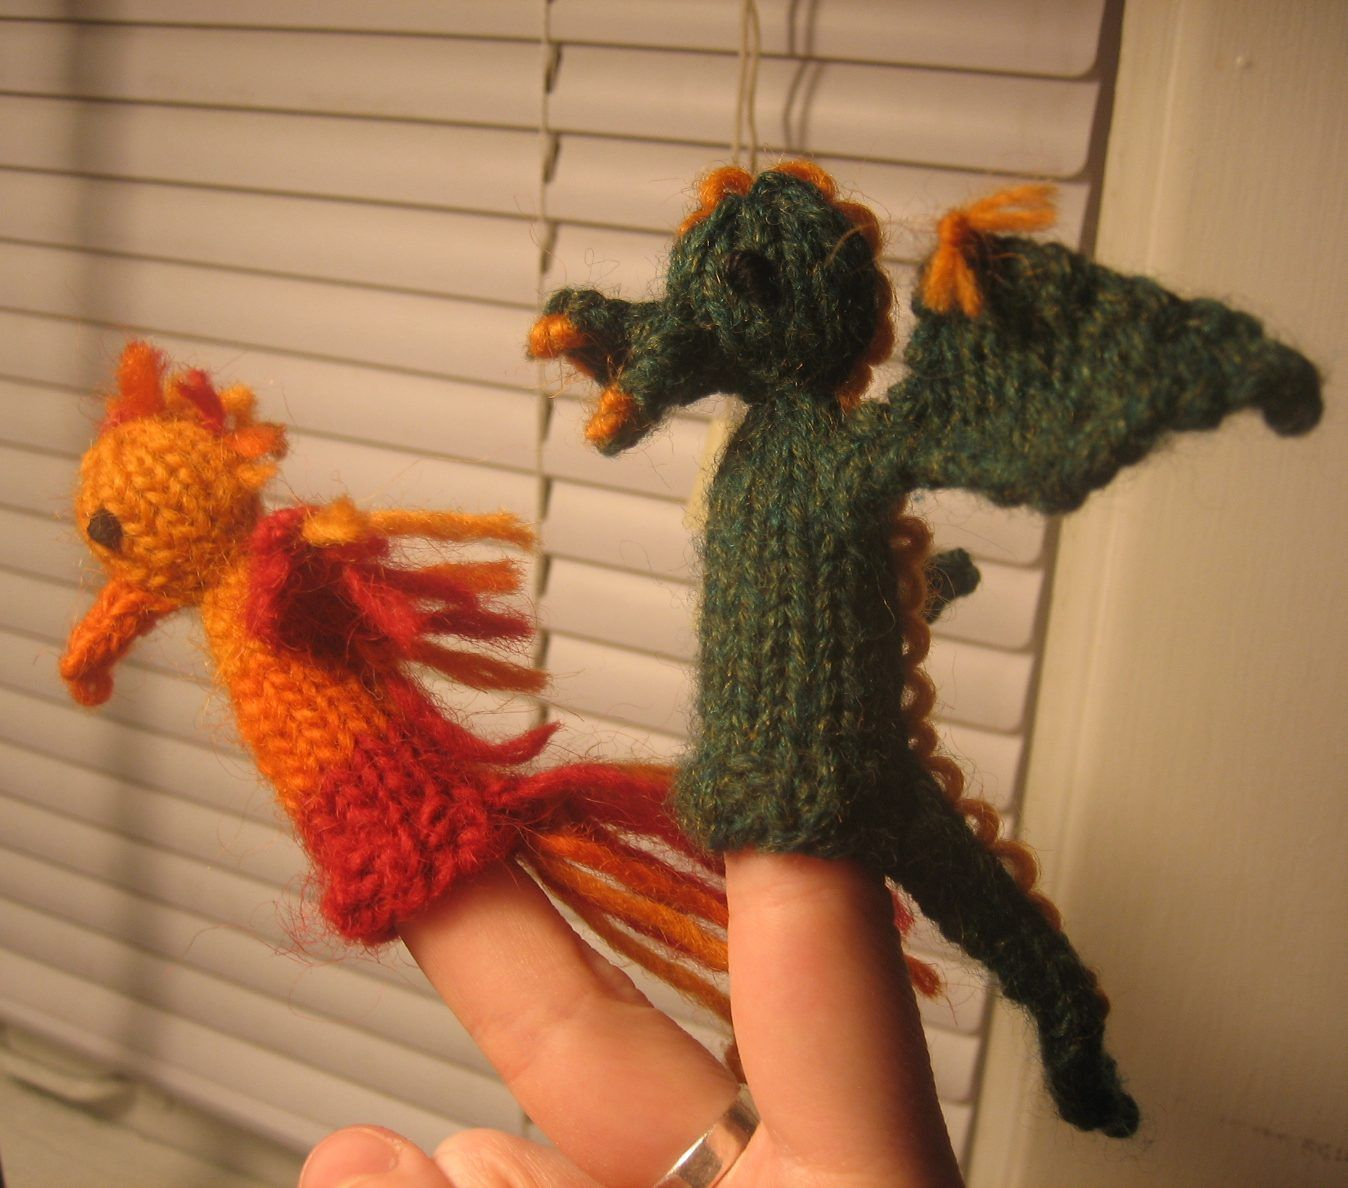 Dragon Knitting Patterns | Finger puppets, Puppet and Knitting patterns